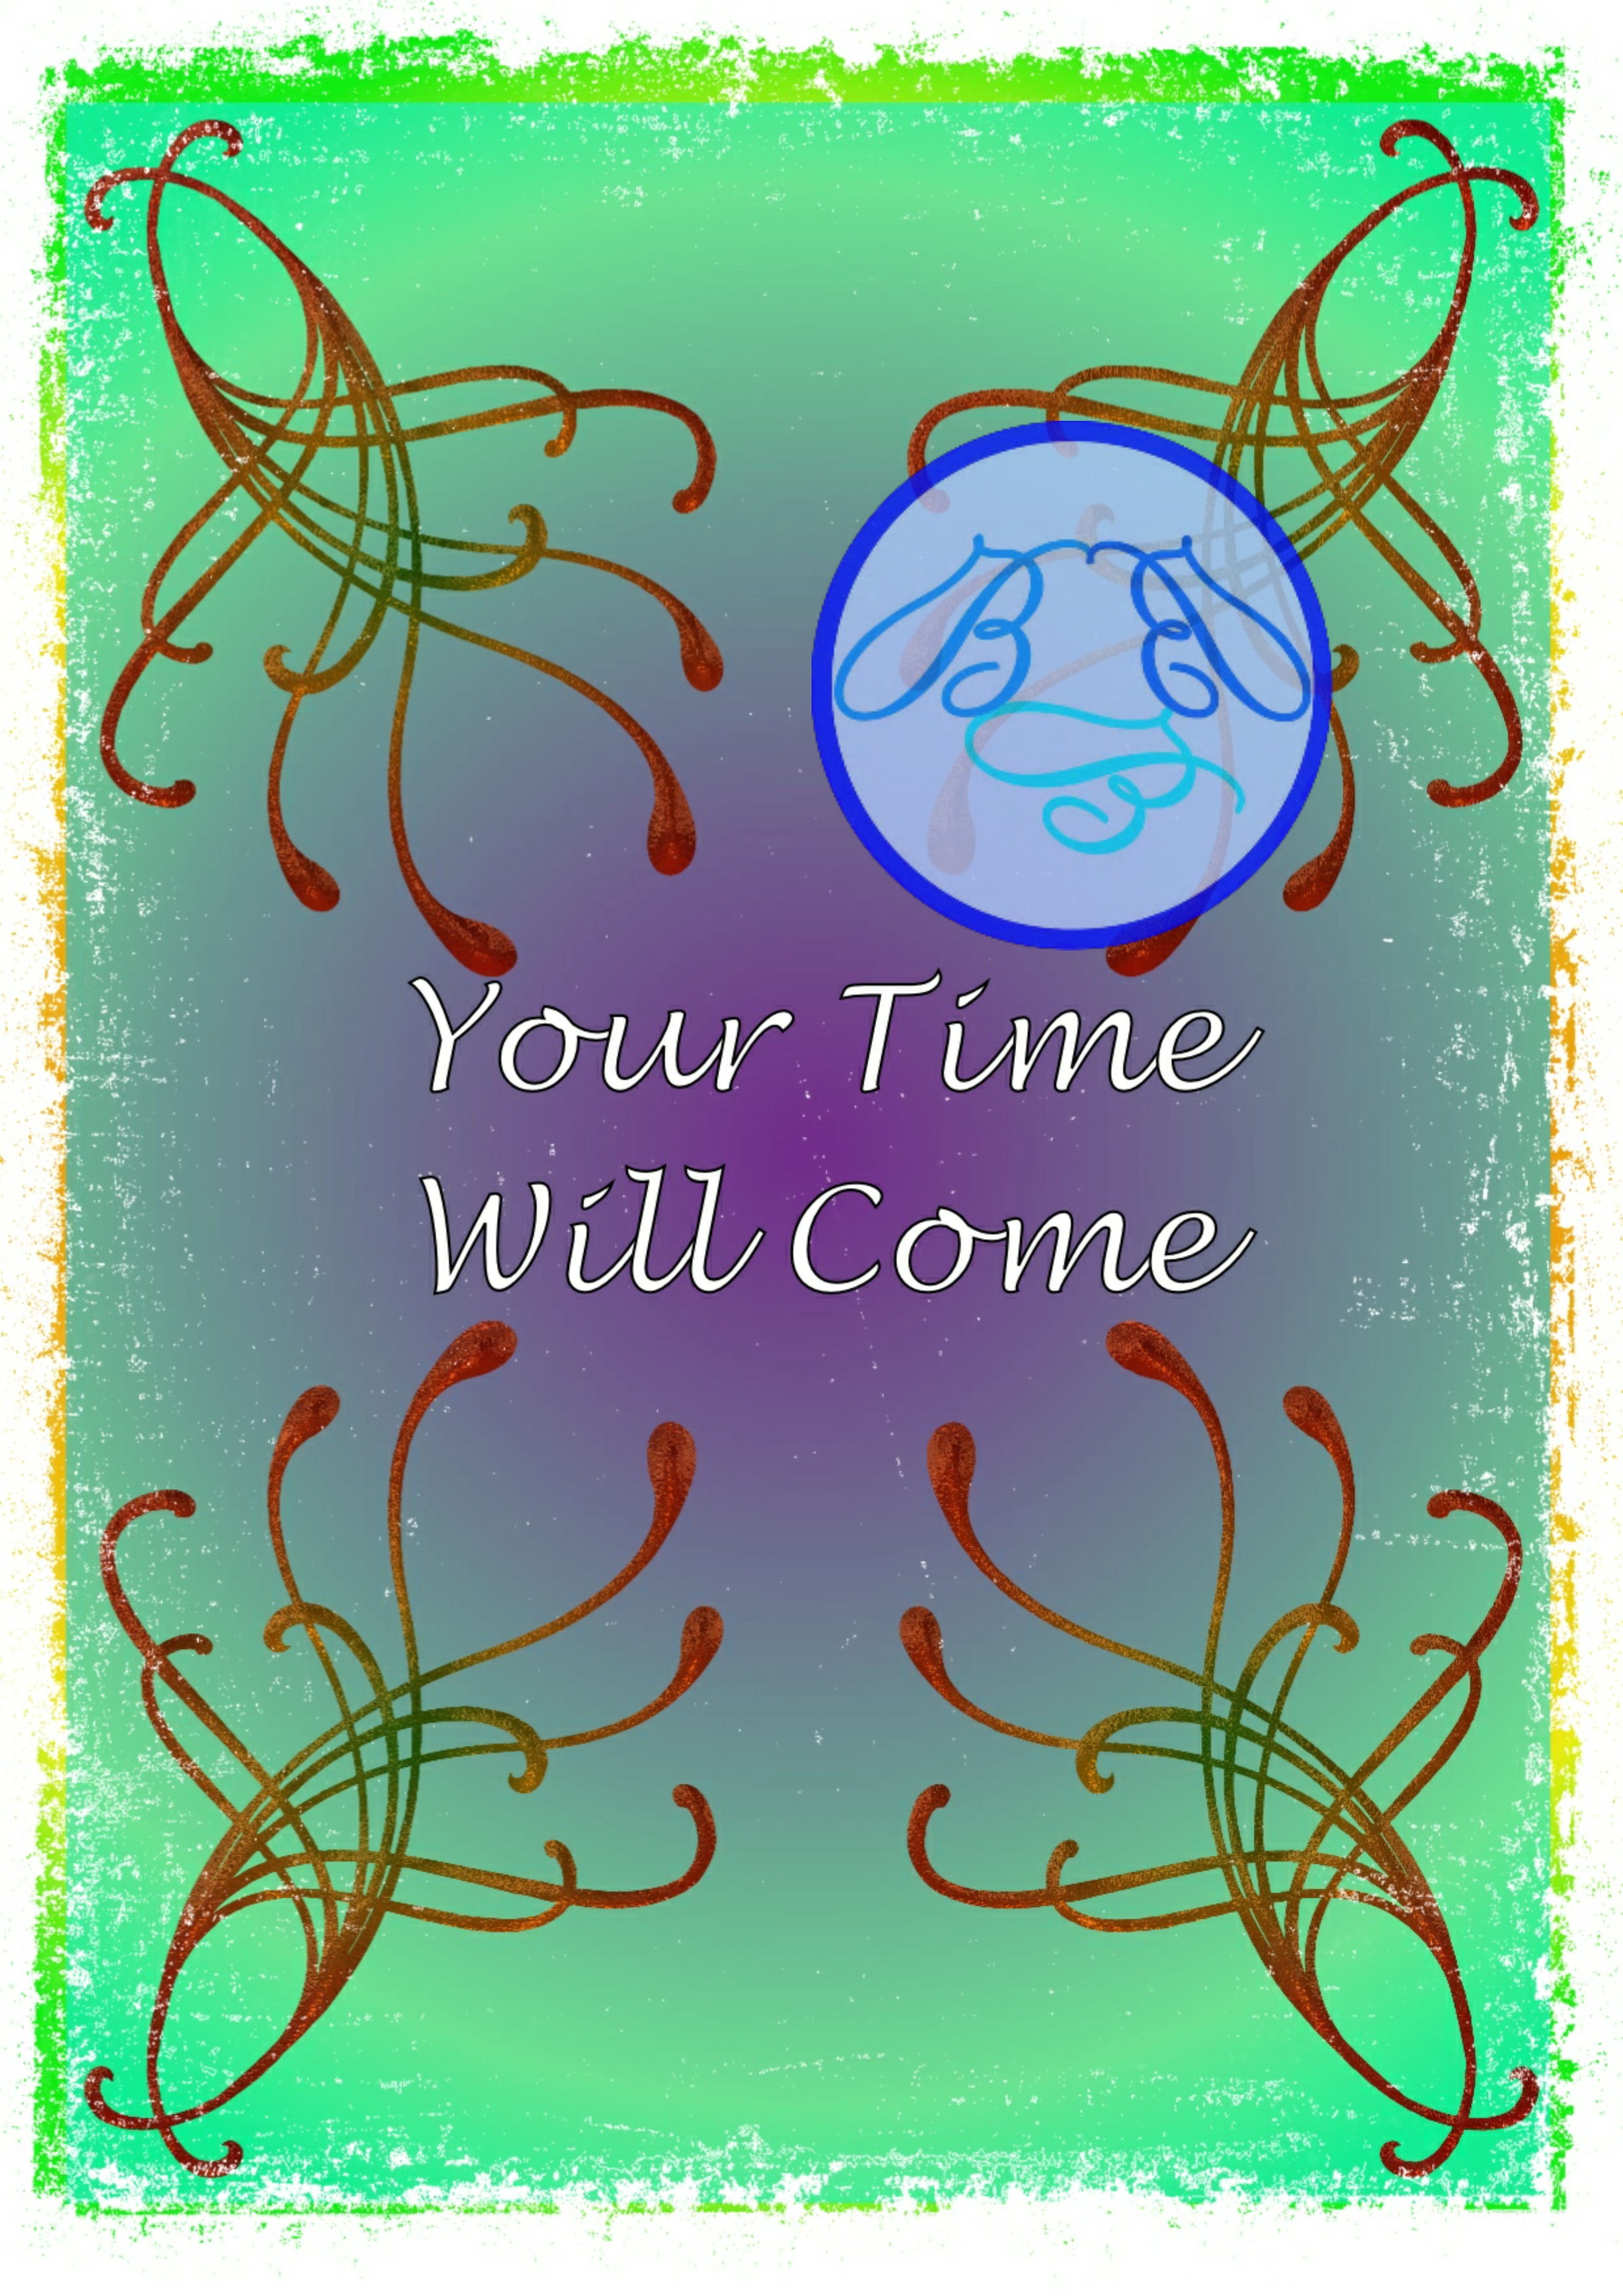 TBBBN003 Your Time Will Come